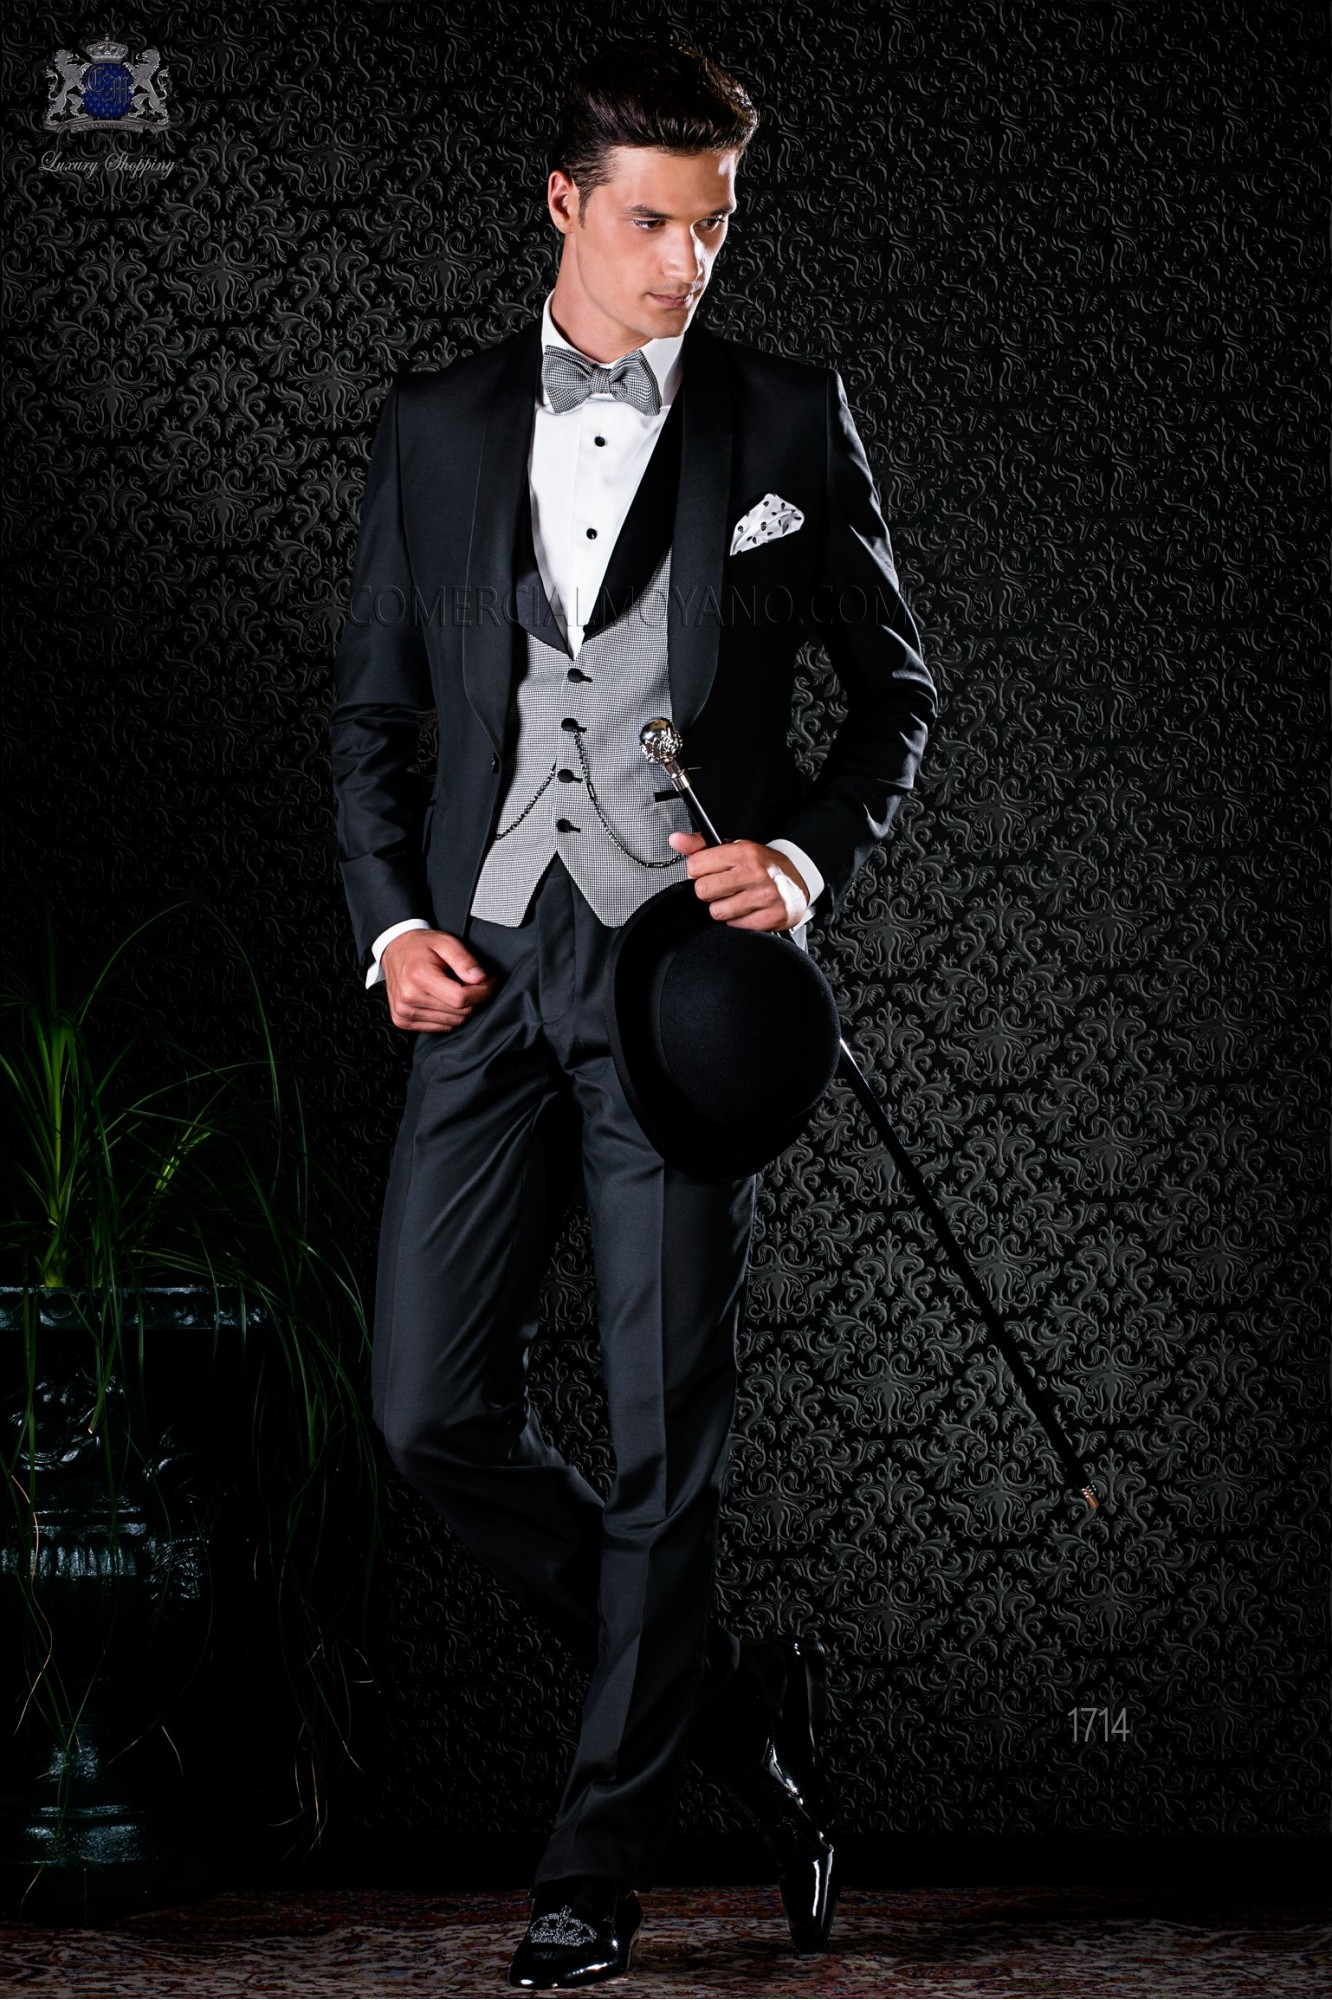 Italian bespoke blue tuxedo with peak satin lapels and 1 button. Wool mix fabric model 1710 Ottavio Nuccio Gala